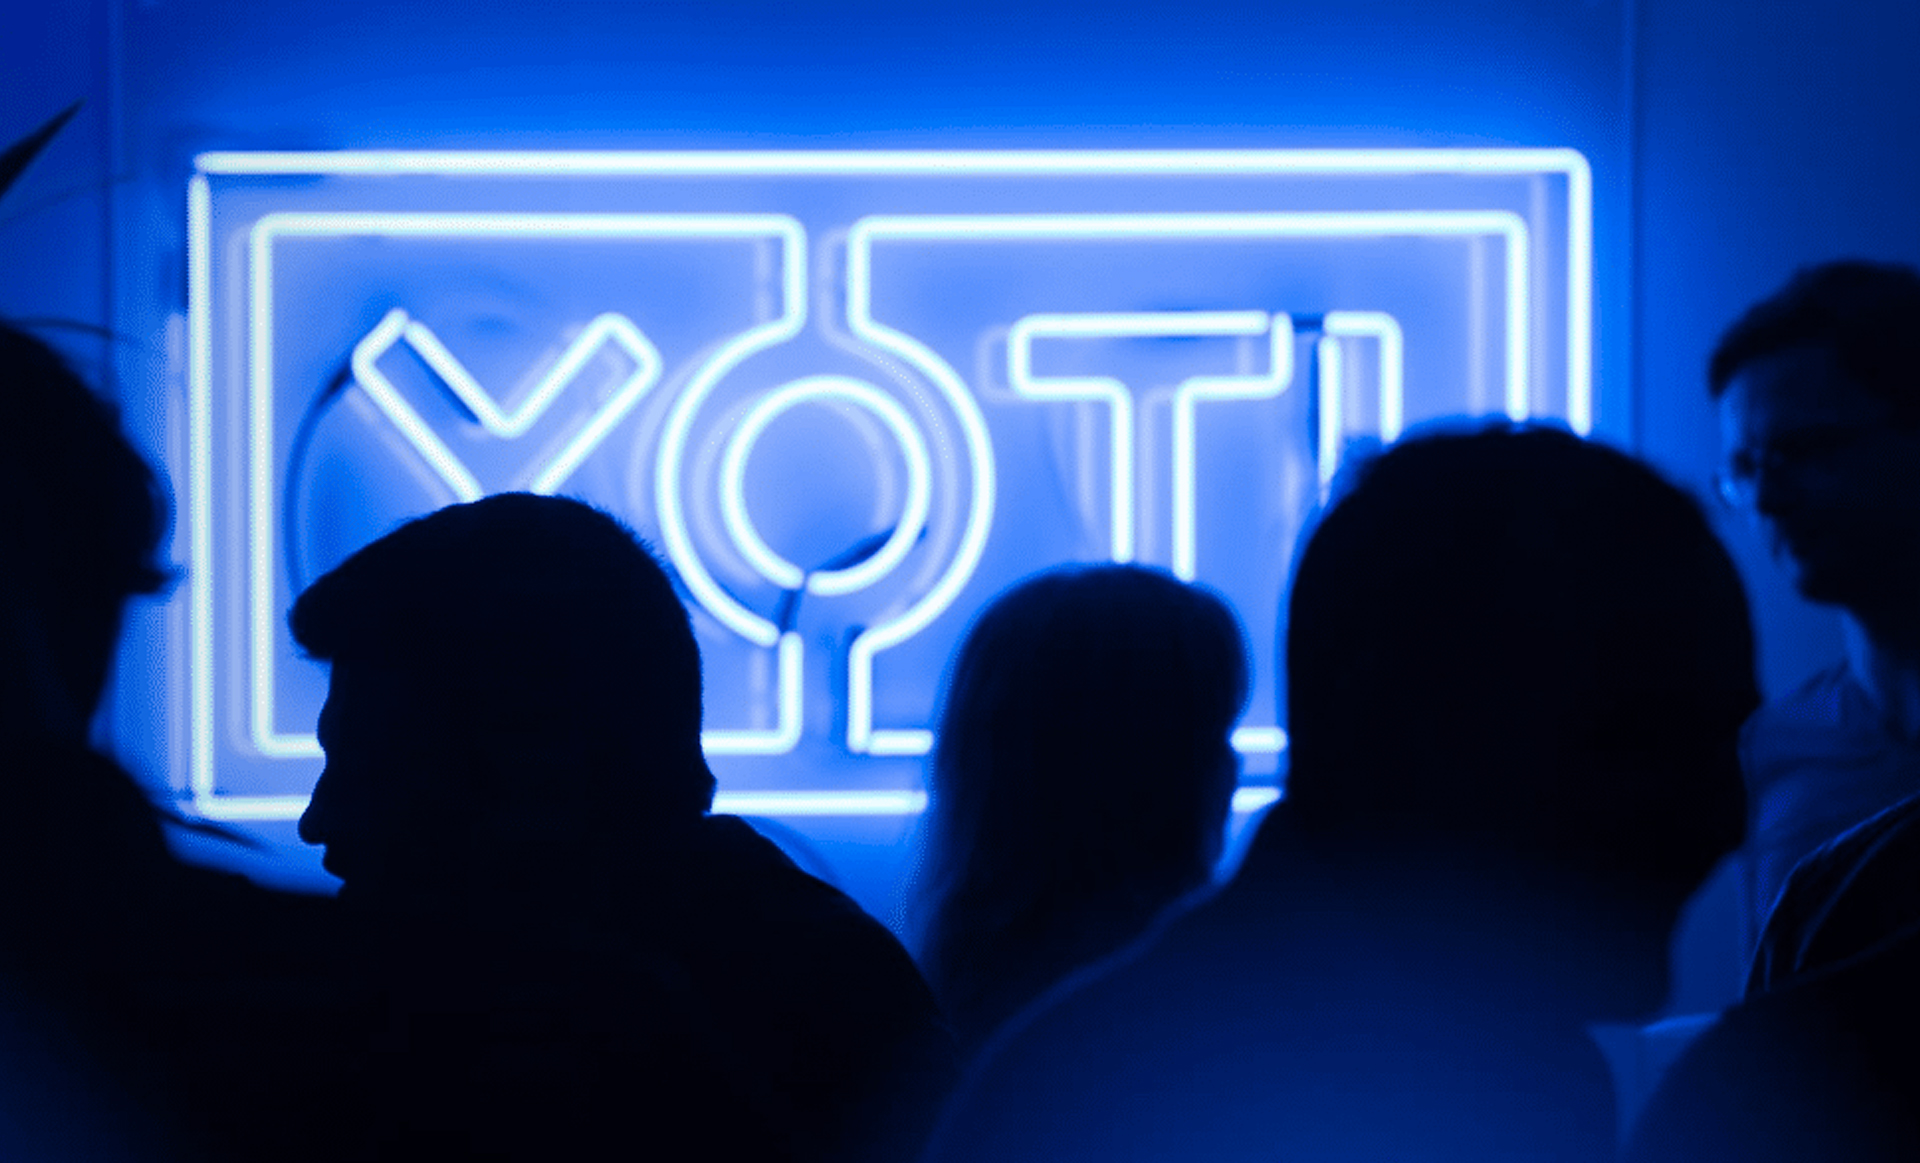 Splendid Unlimited creates brand identity and user experience for Yoti, a revolutionary digital ID platform